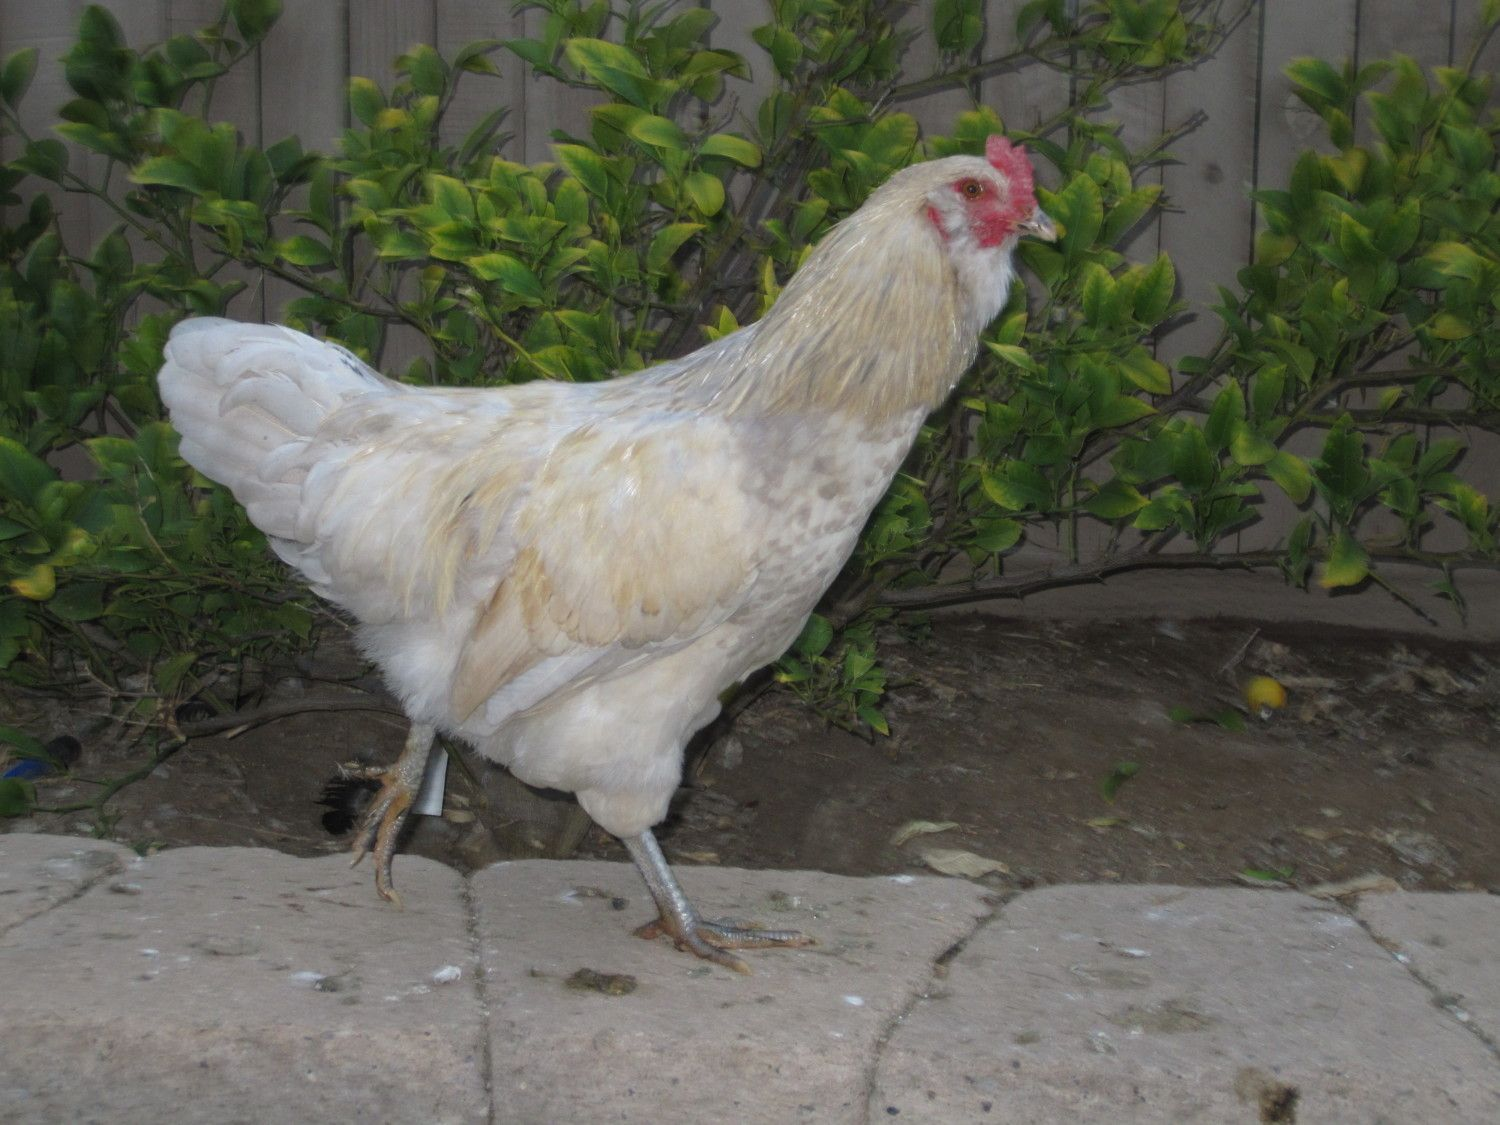 Hen or Rooster?